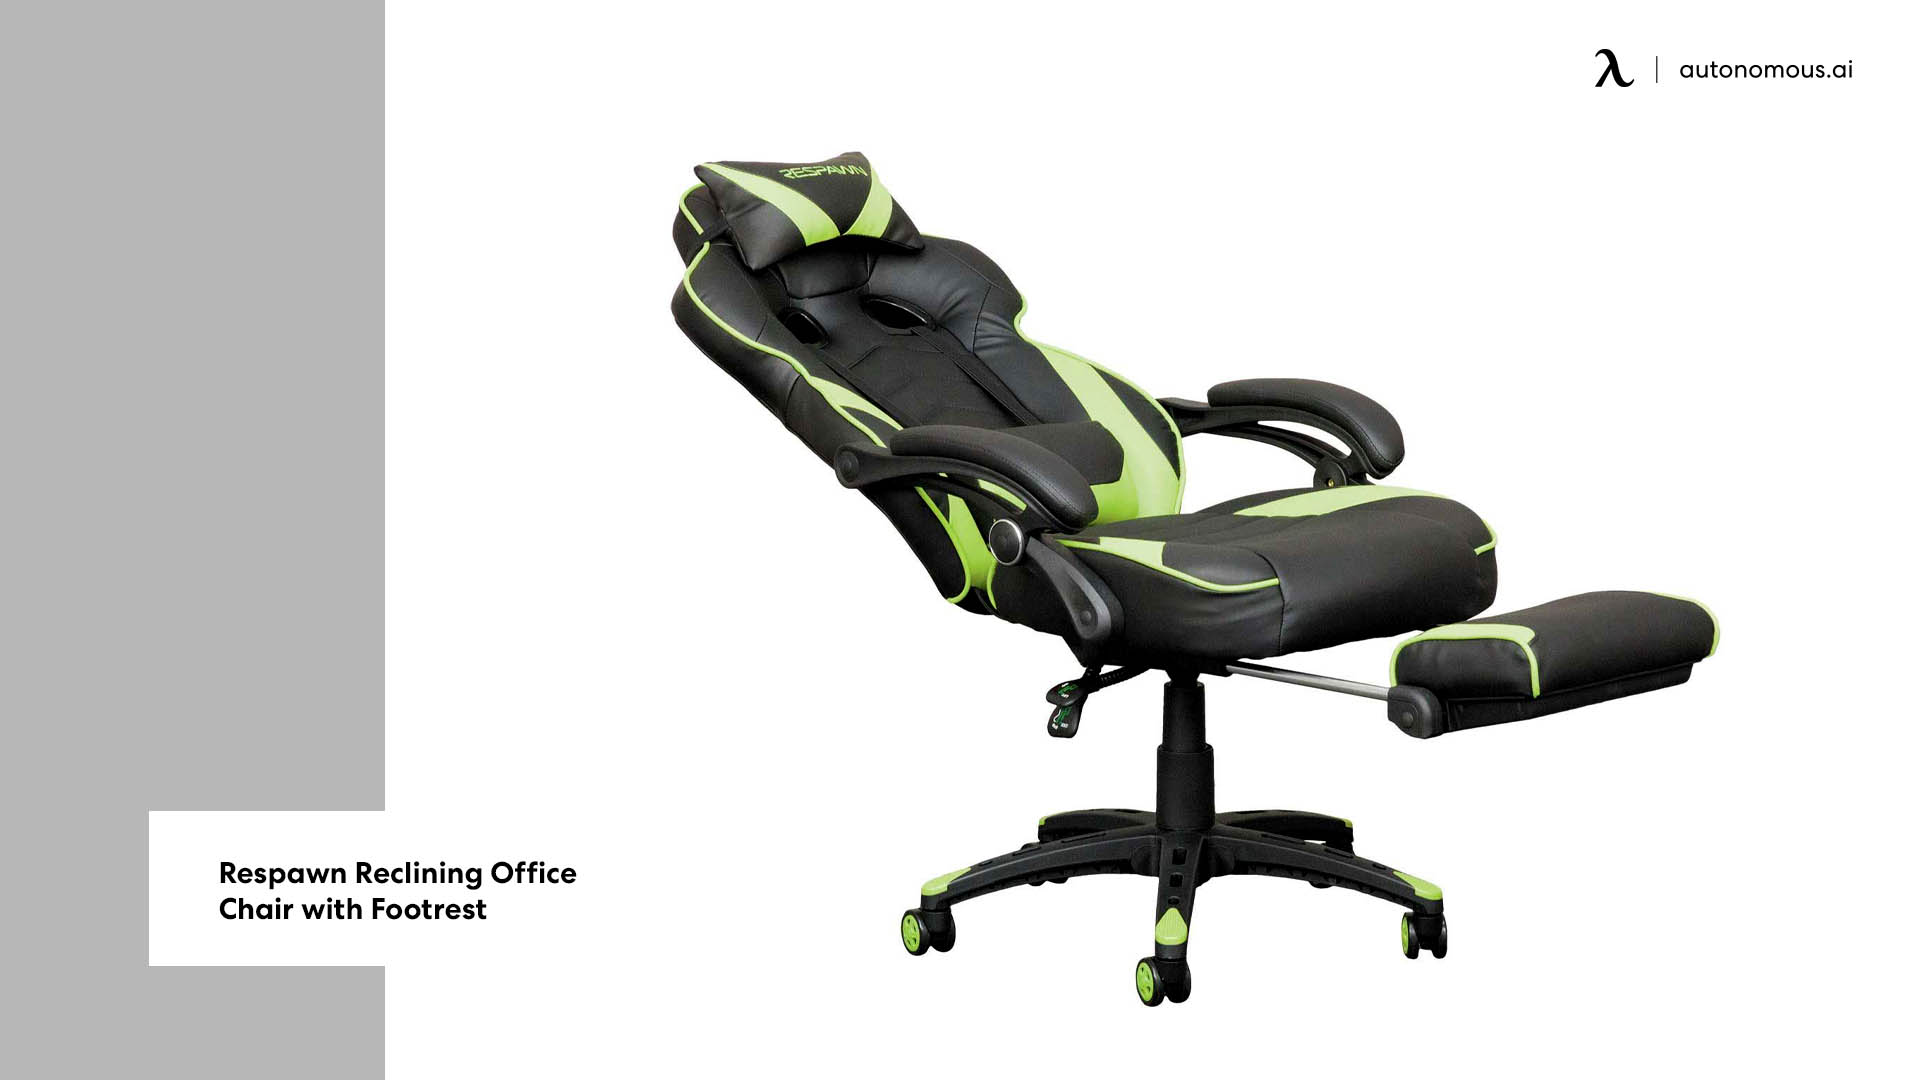 Photo of Respawn Reclining Office Chair with Footrest